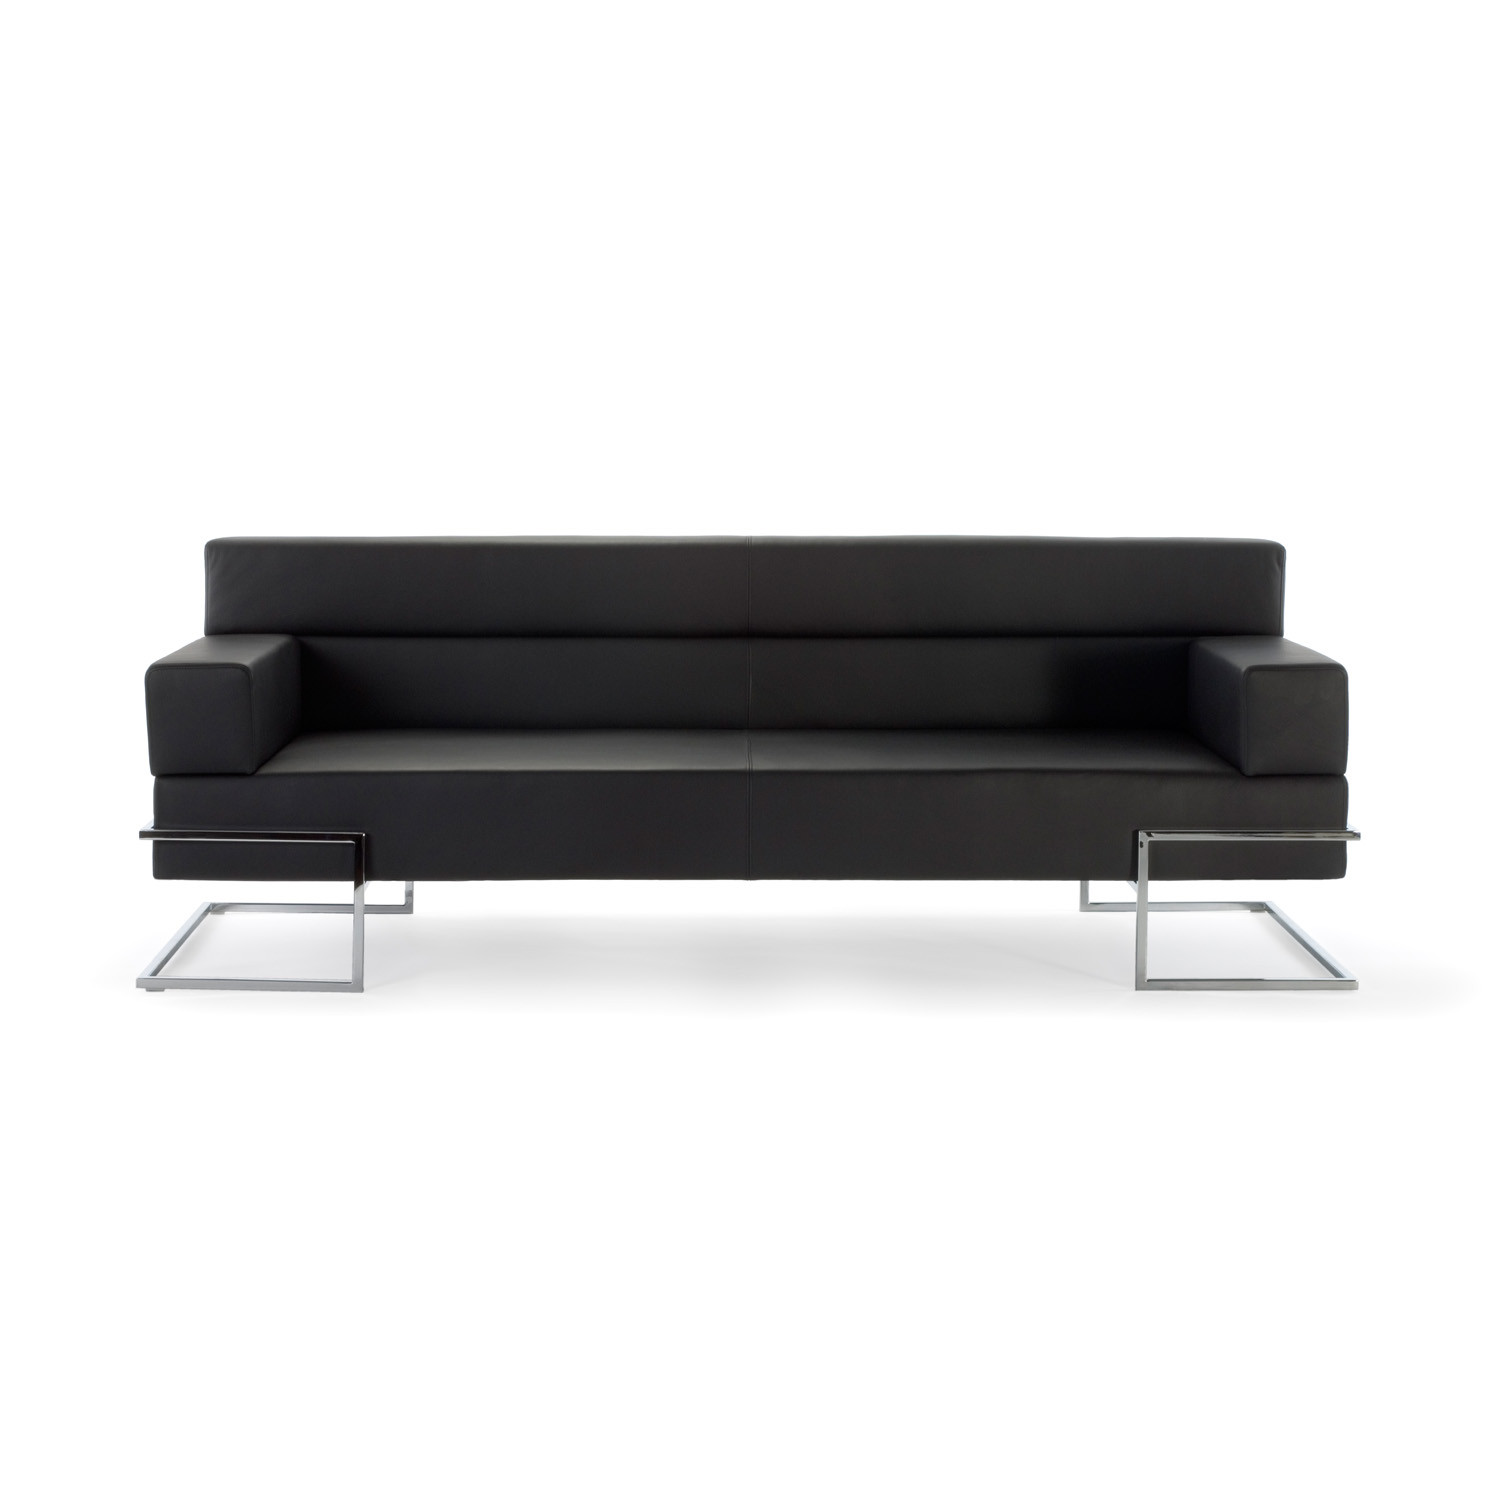 Orizzonte Sofa from Apres